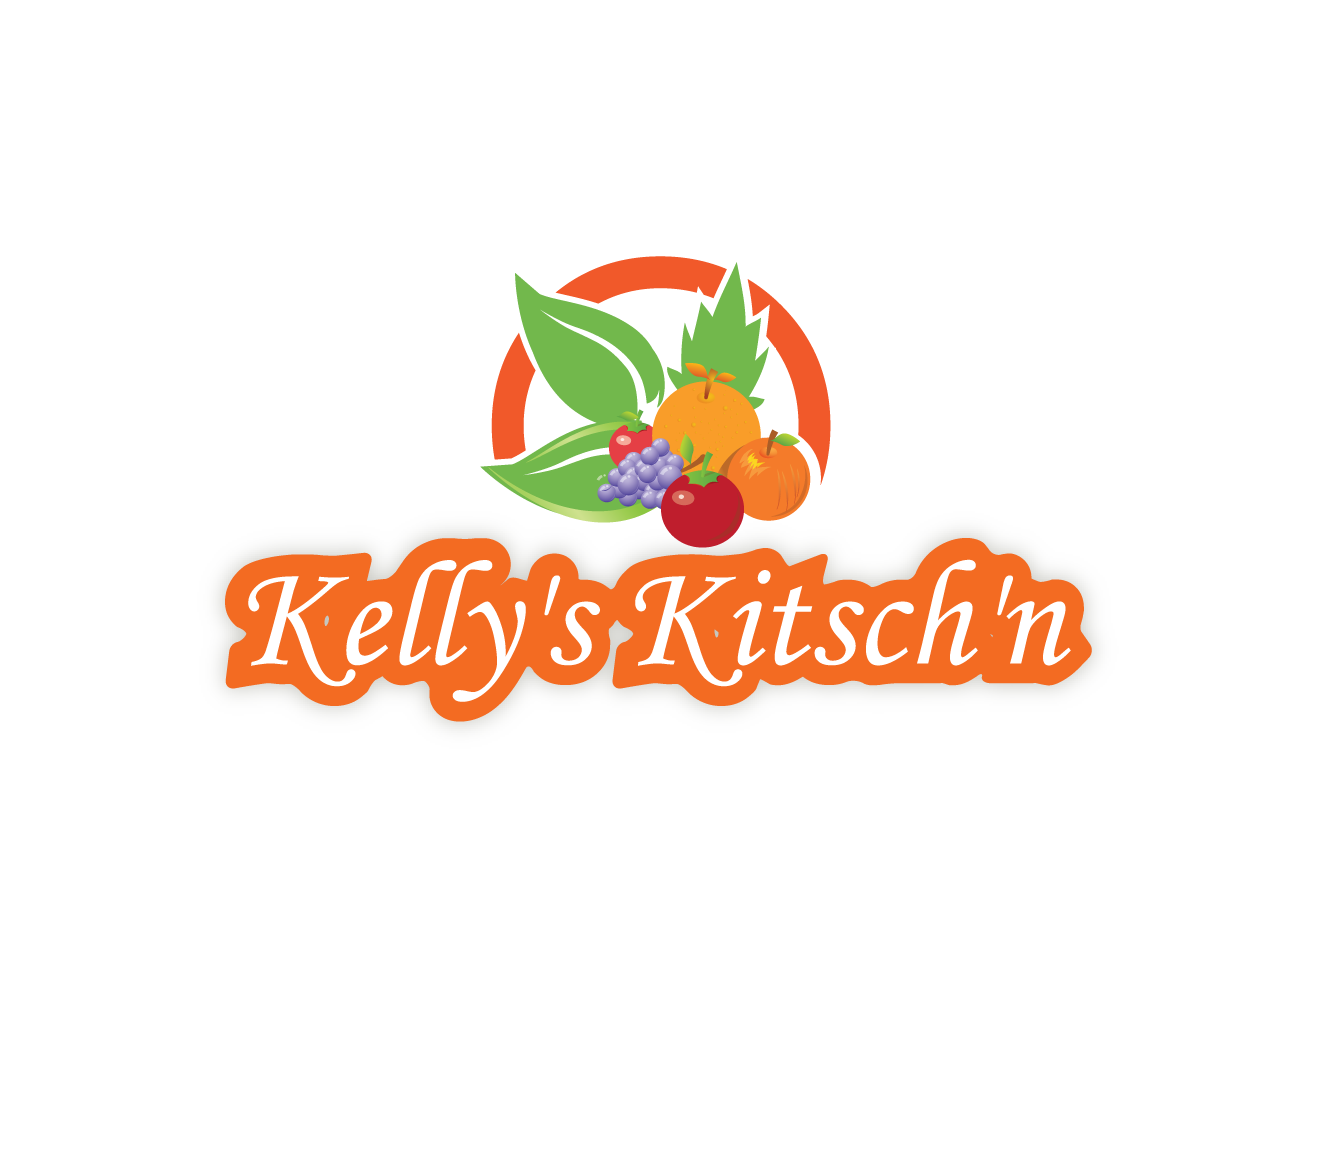 Logo Design by 354studio - Entry No. 53 in the Logo Design Contest Unique Logo Design Wanted for Kelly's Kitsch'n.